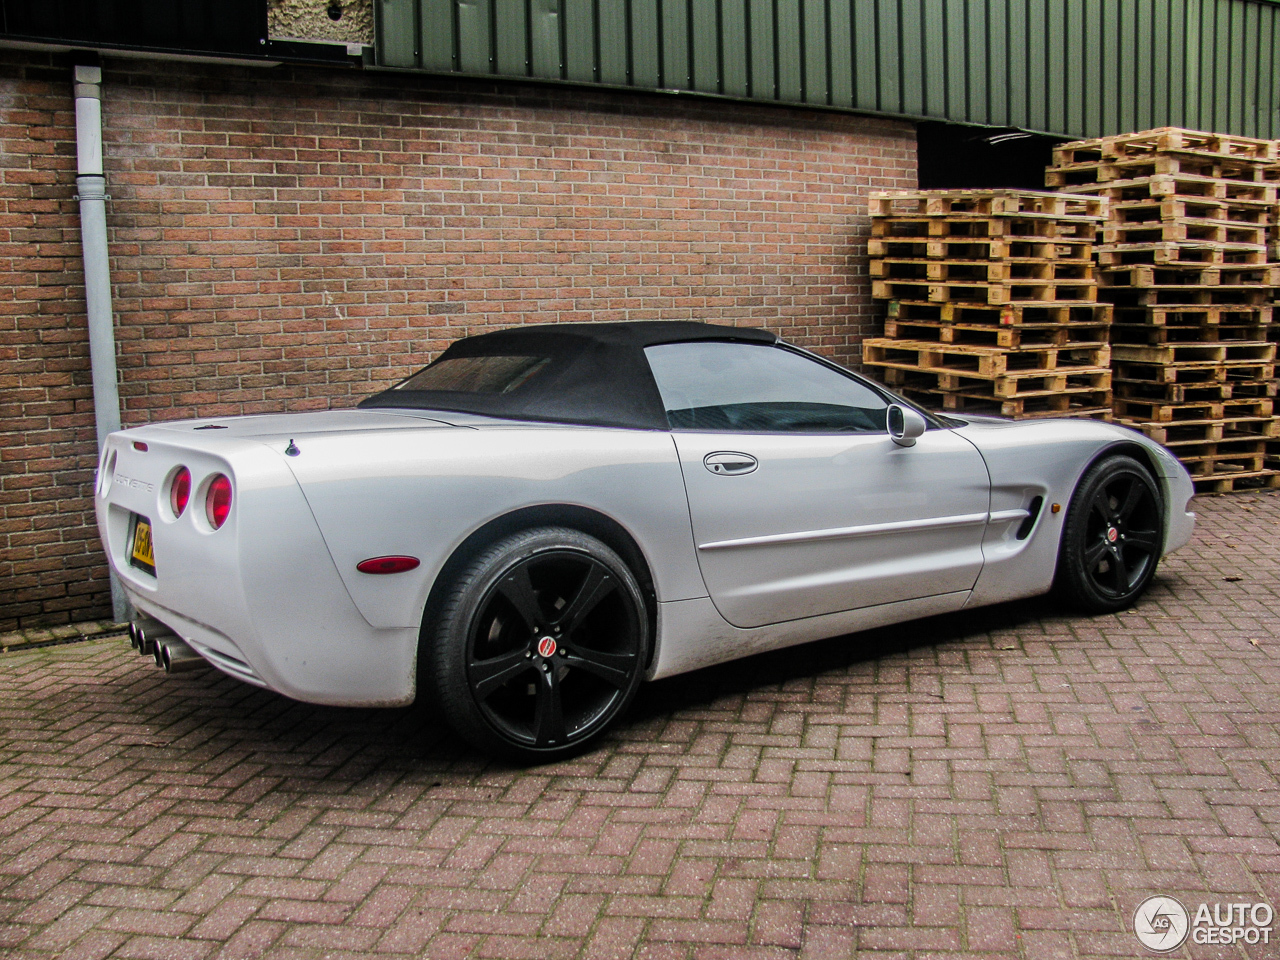 Chevrolet Corvette C5 Convertible 20 January 2018